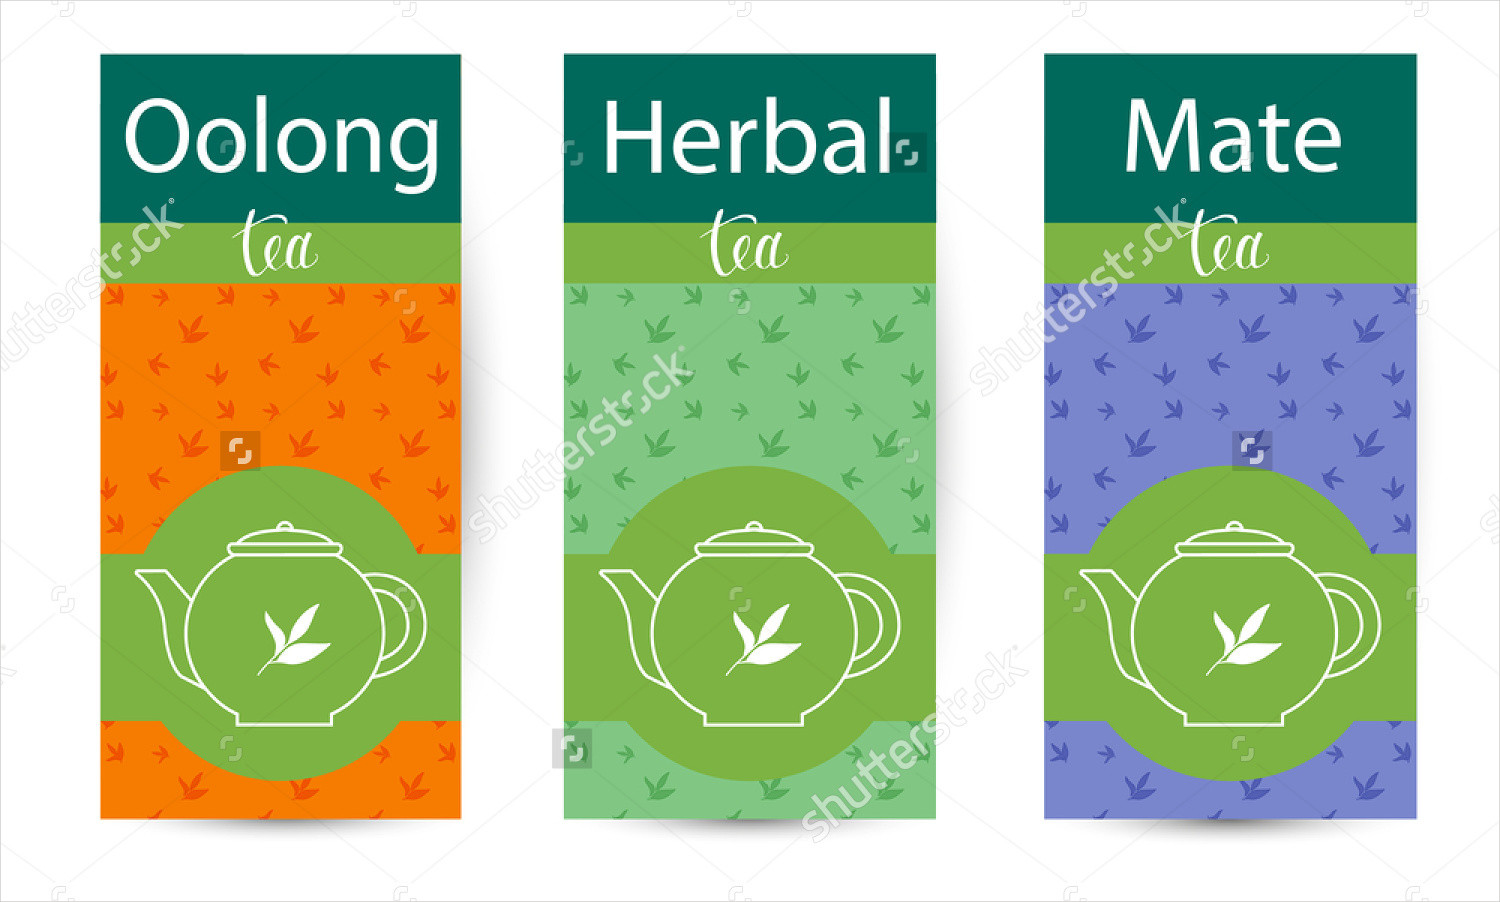 herbal tea packaging design1